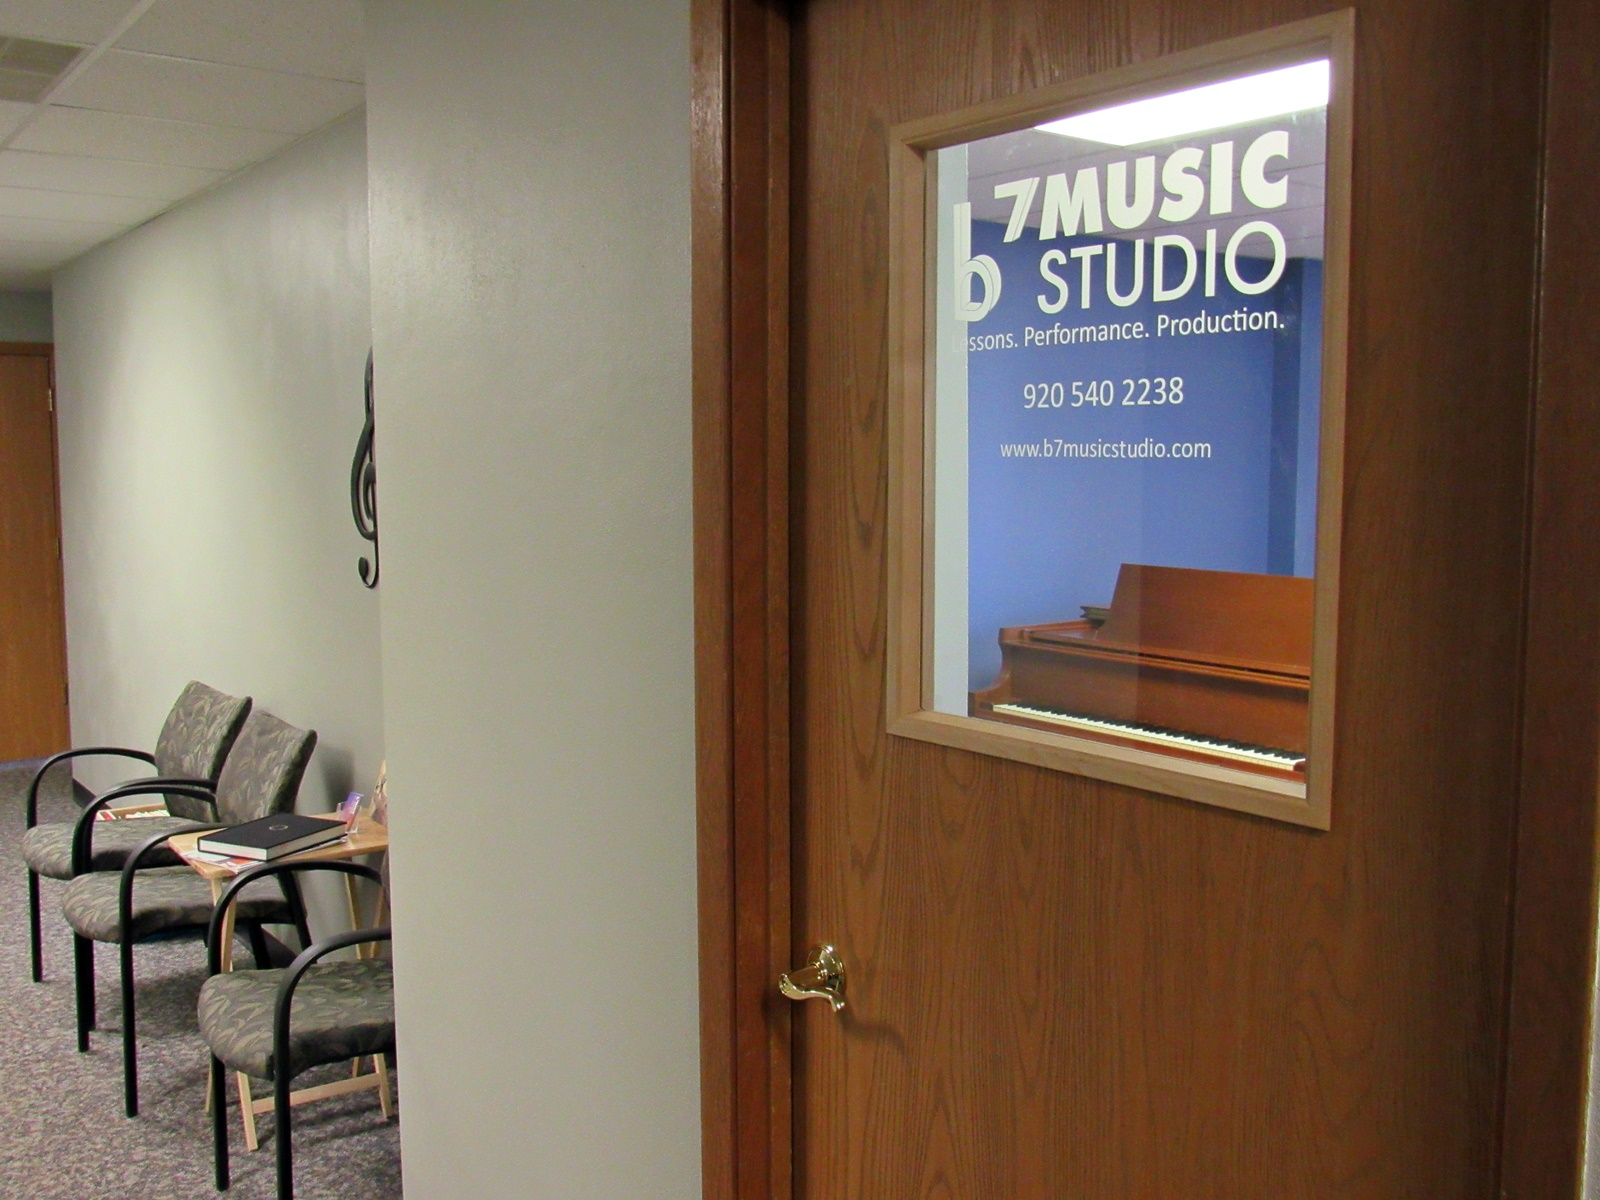 view of the door and waiting area to B7 Music Studio